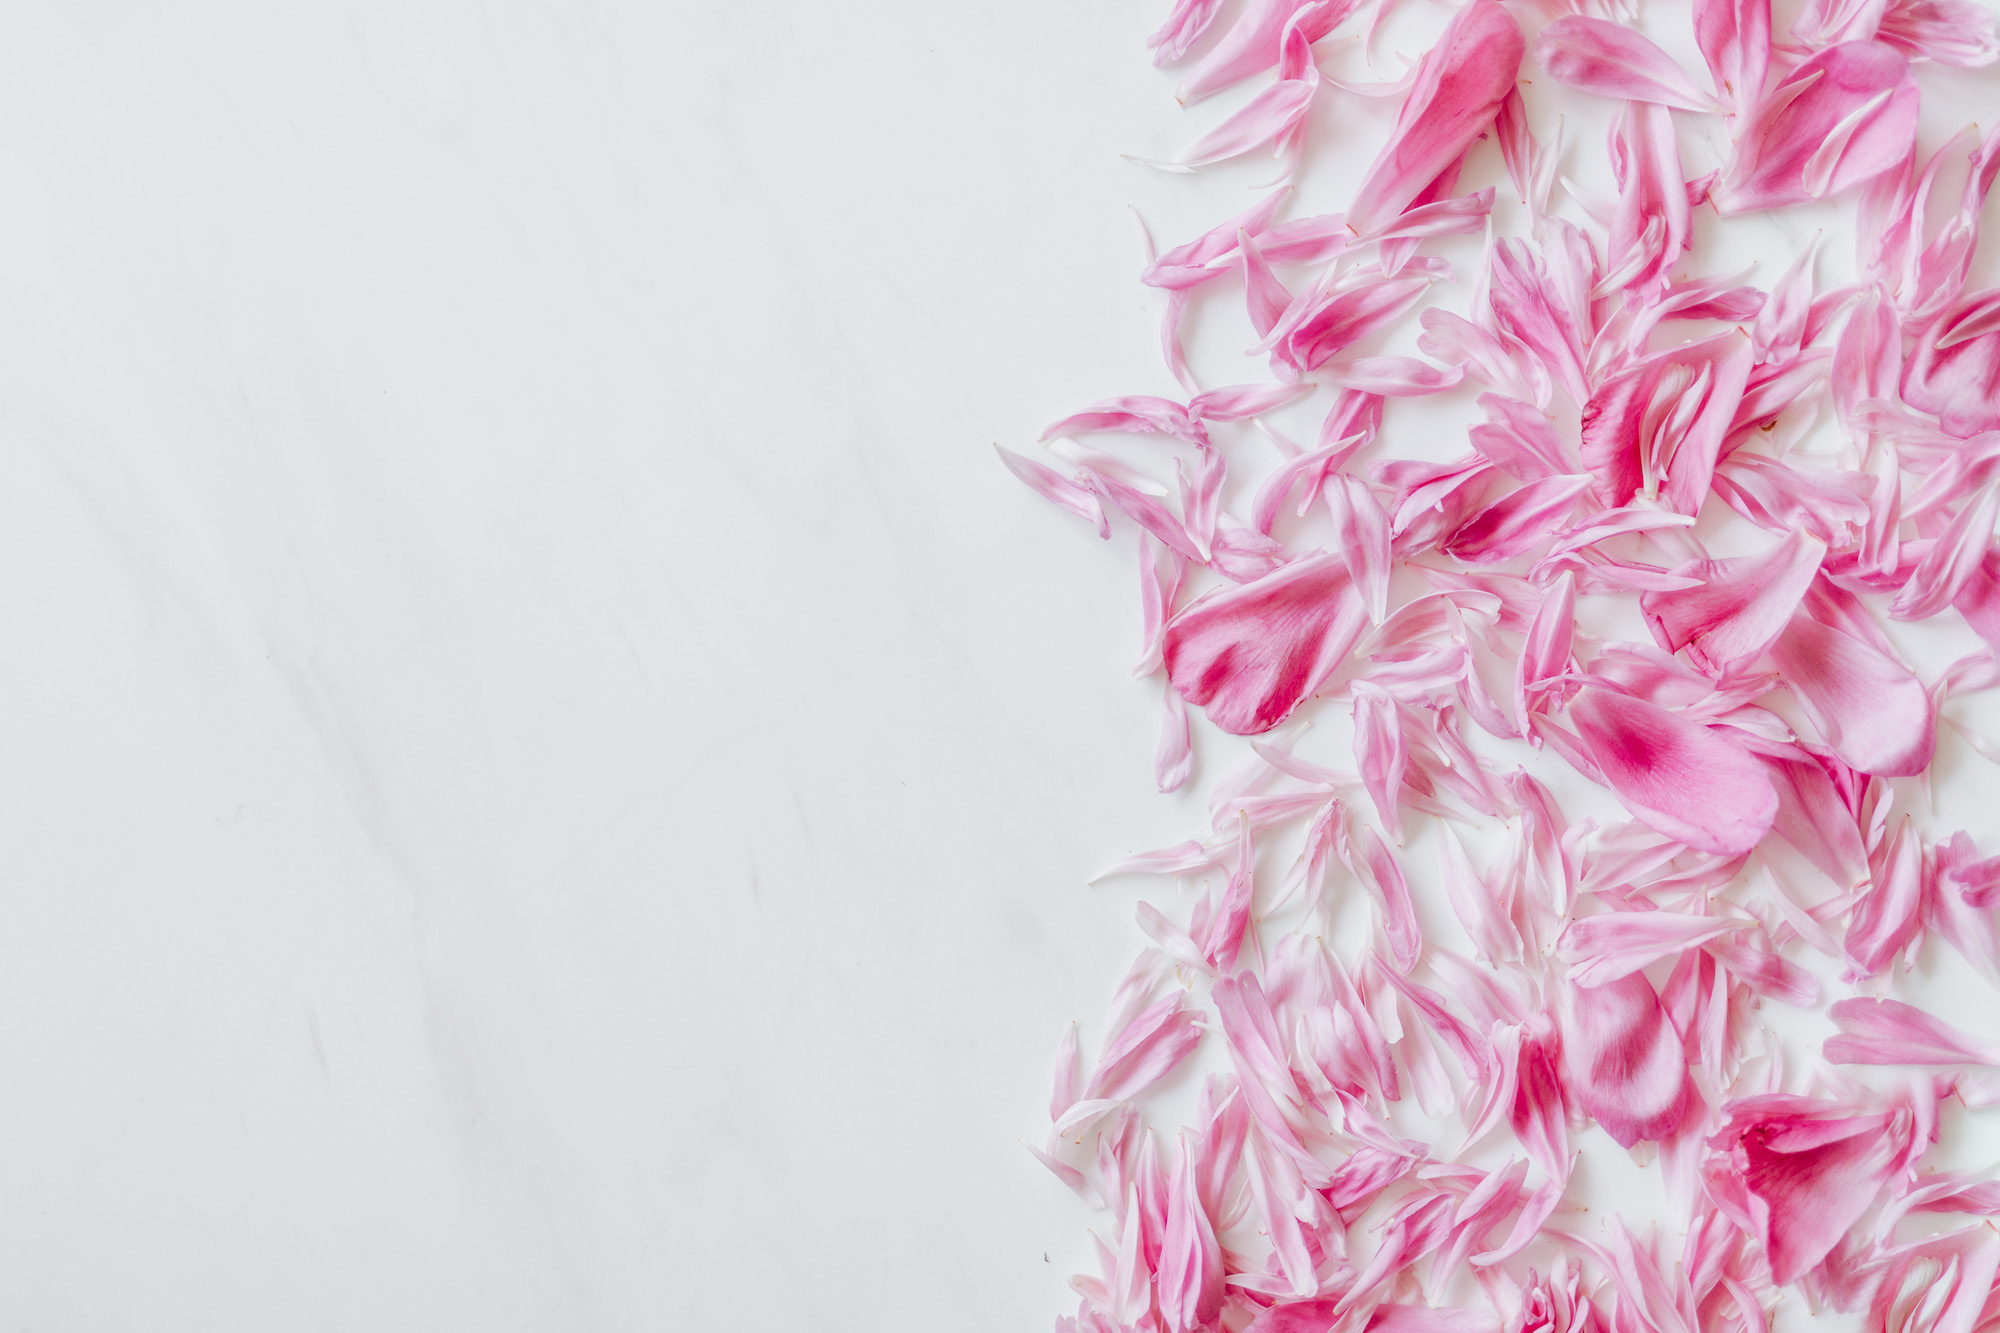 kaboompics_Peonies on white marble background 2